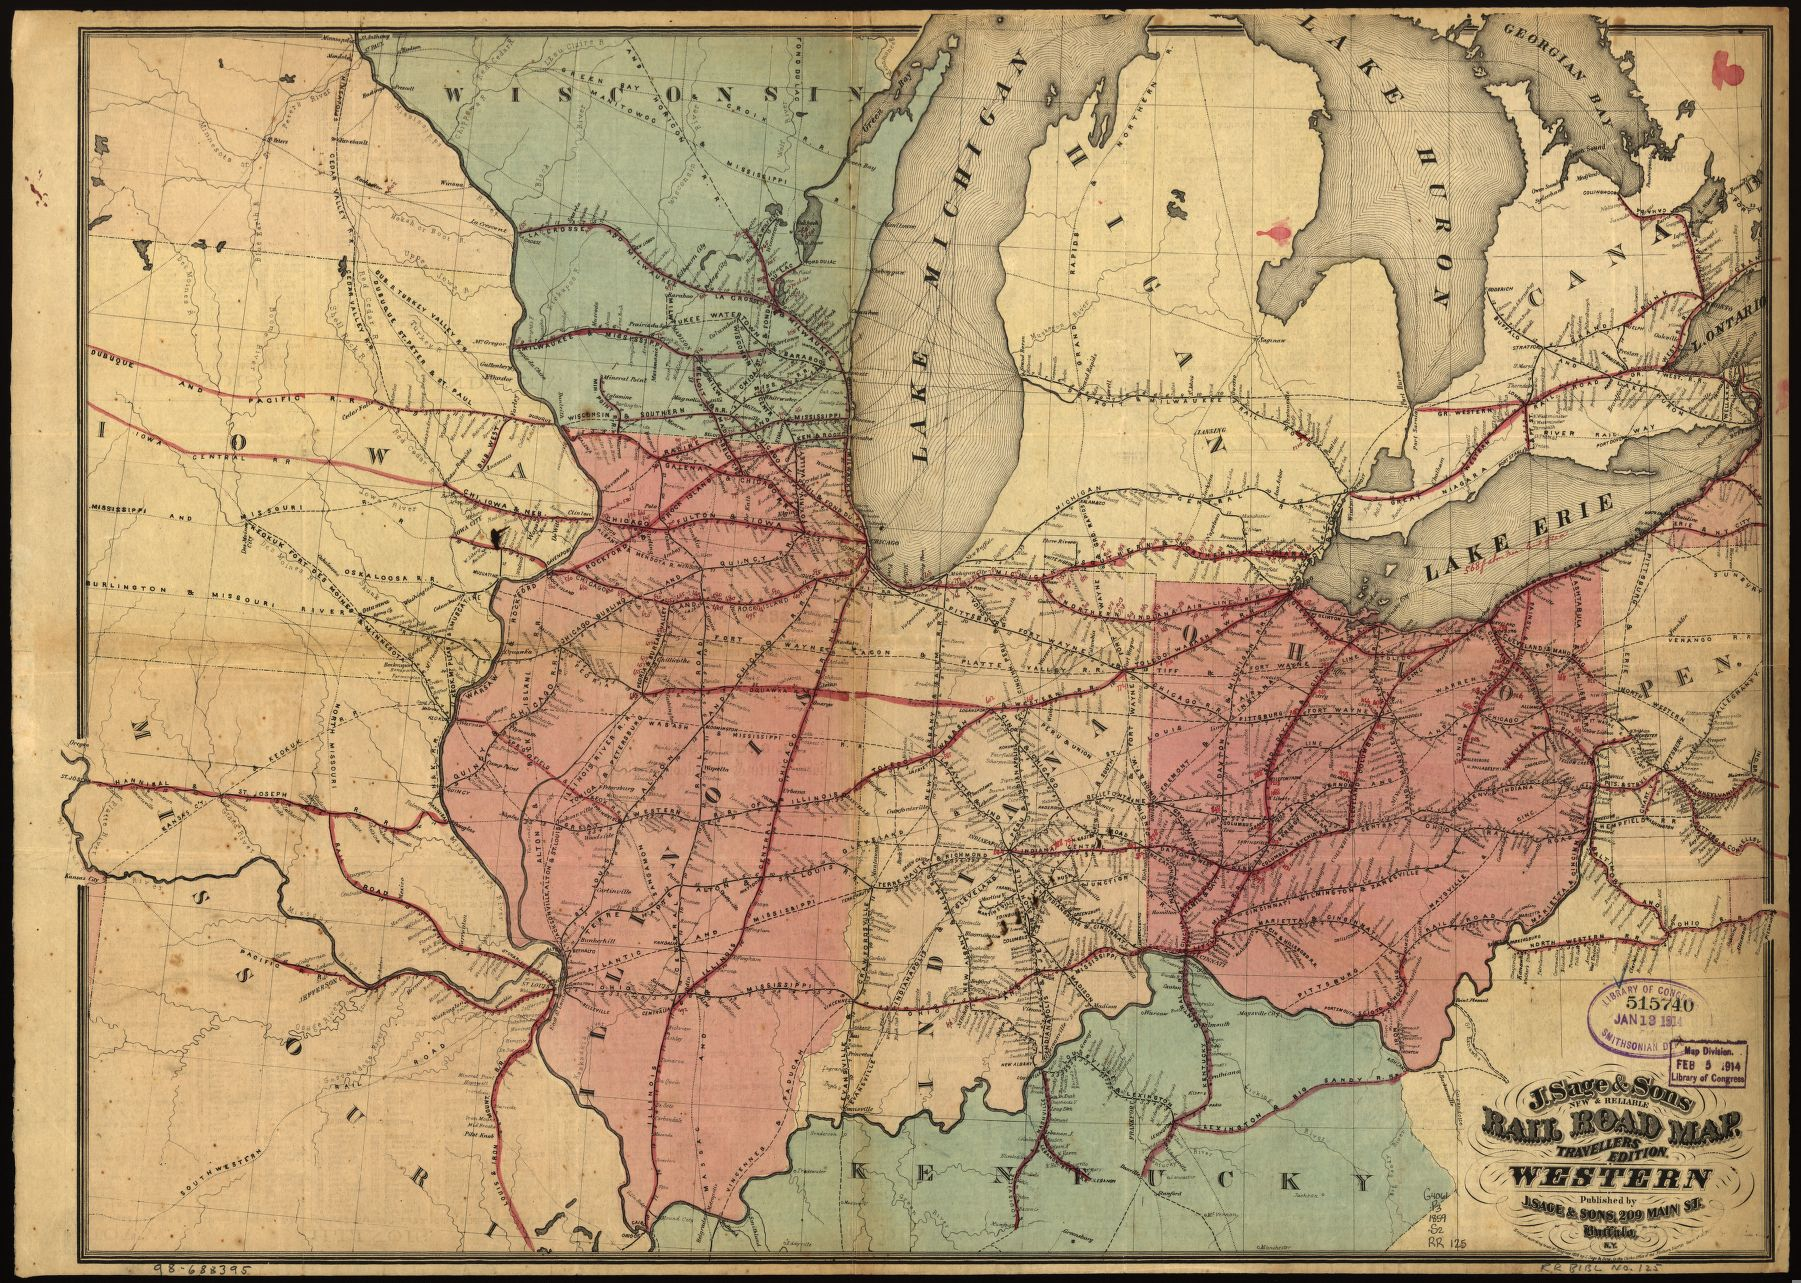 Are you a #railfan? Check out our  ~630 railroad maps from 1828 to 1900 that are digitized and available online! 🚂  https://t.co/XtNKnuP0Rn https://t.co/QmLHIV2YBb